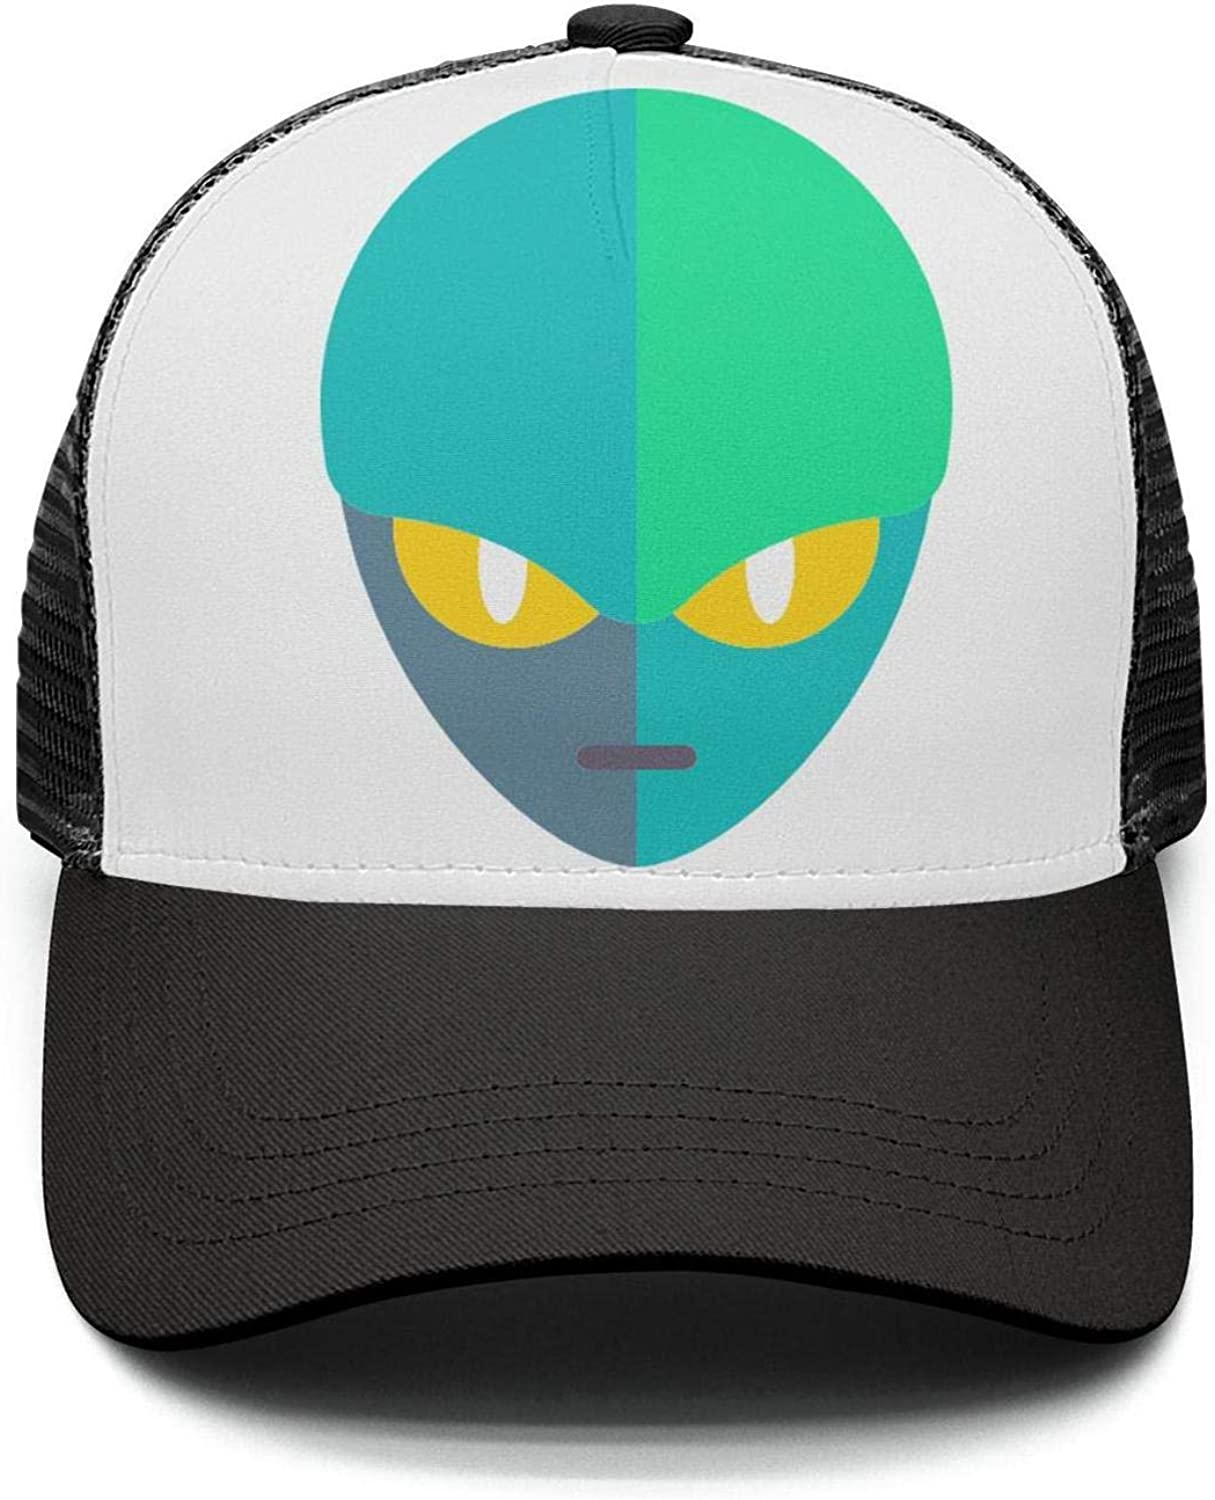 Unisex Adjustable Meshback Sandwich Hats Galaxy Space Snapback Trucker Caps